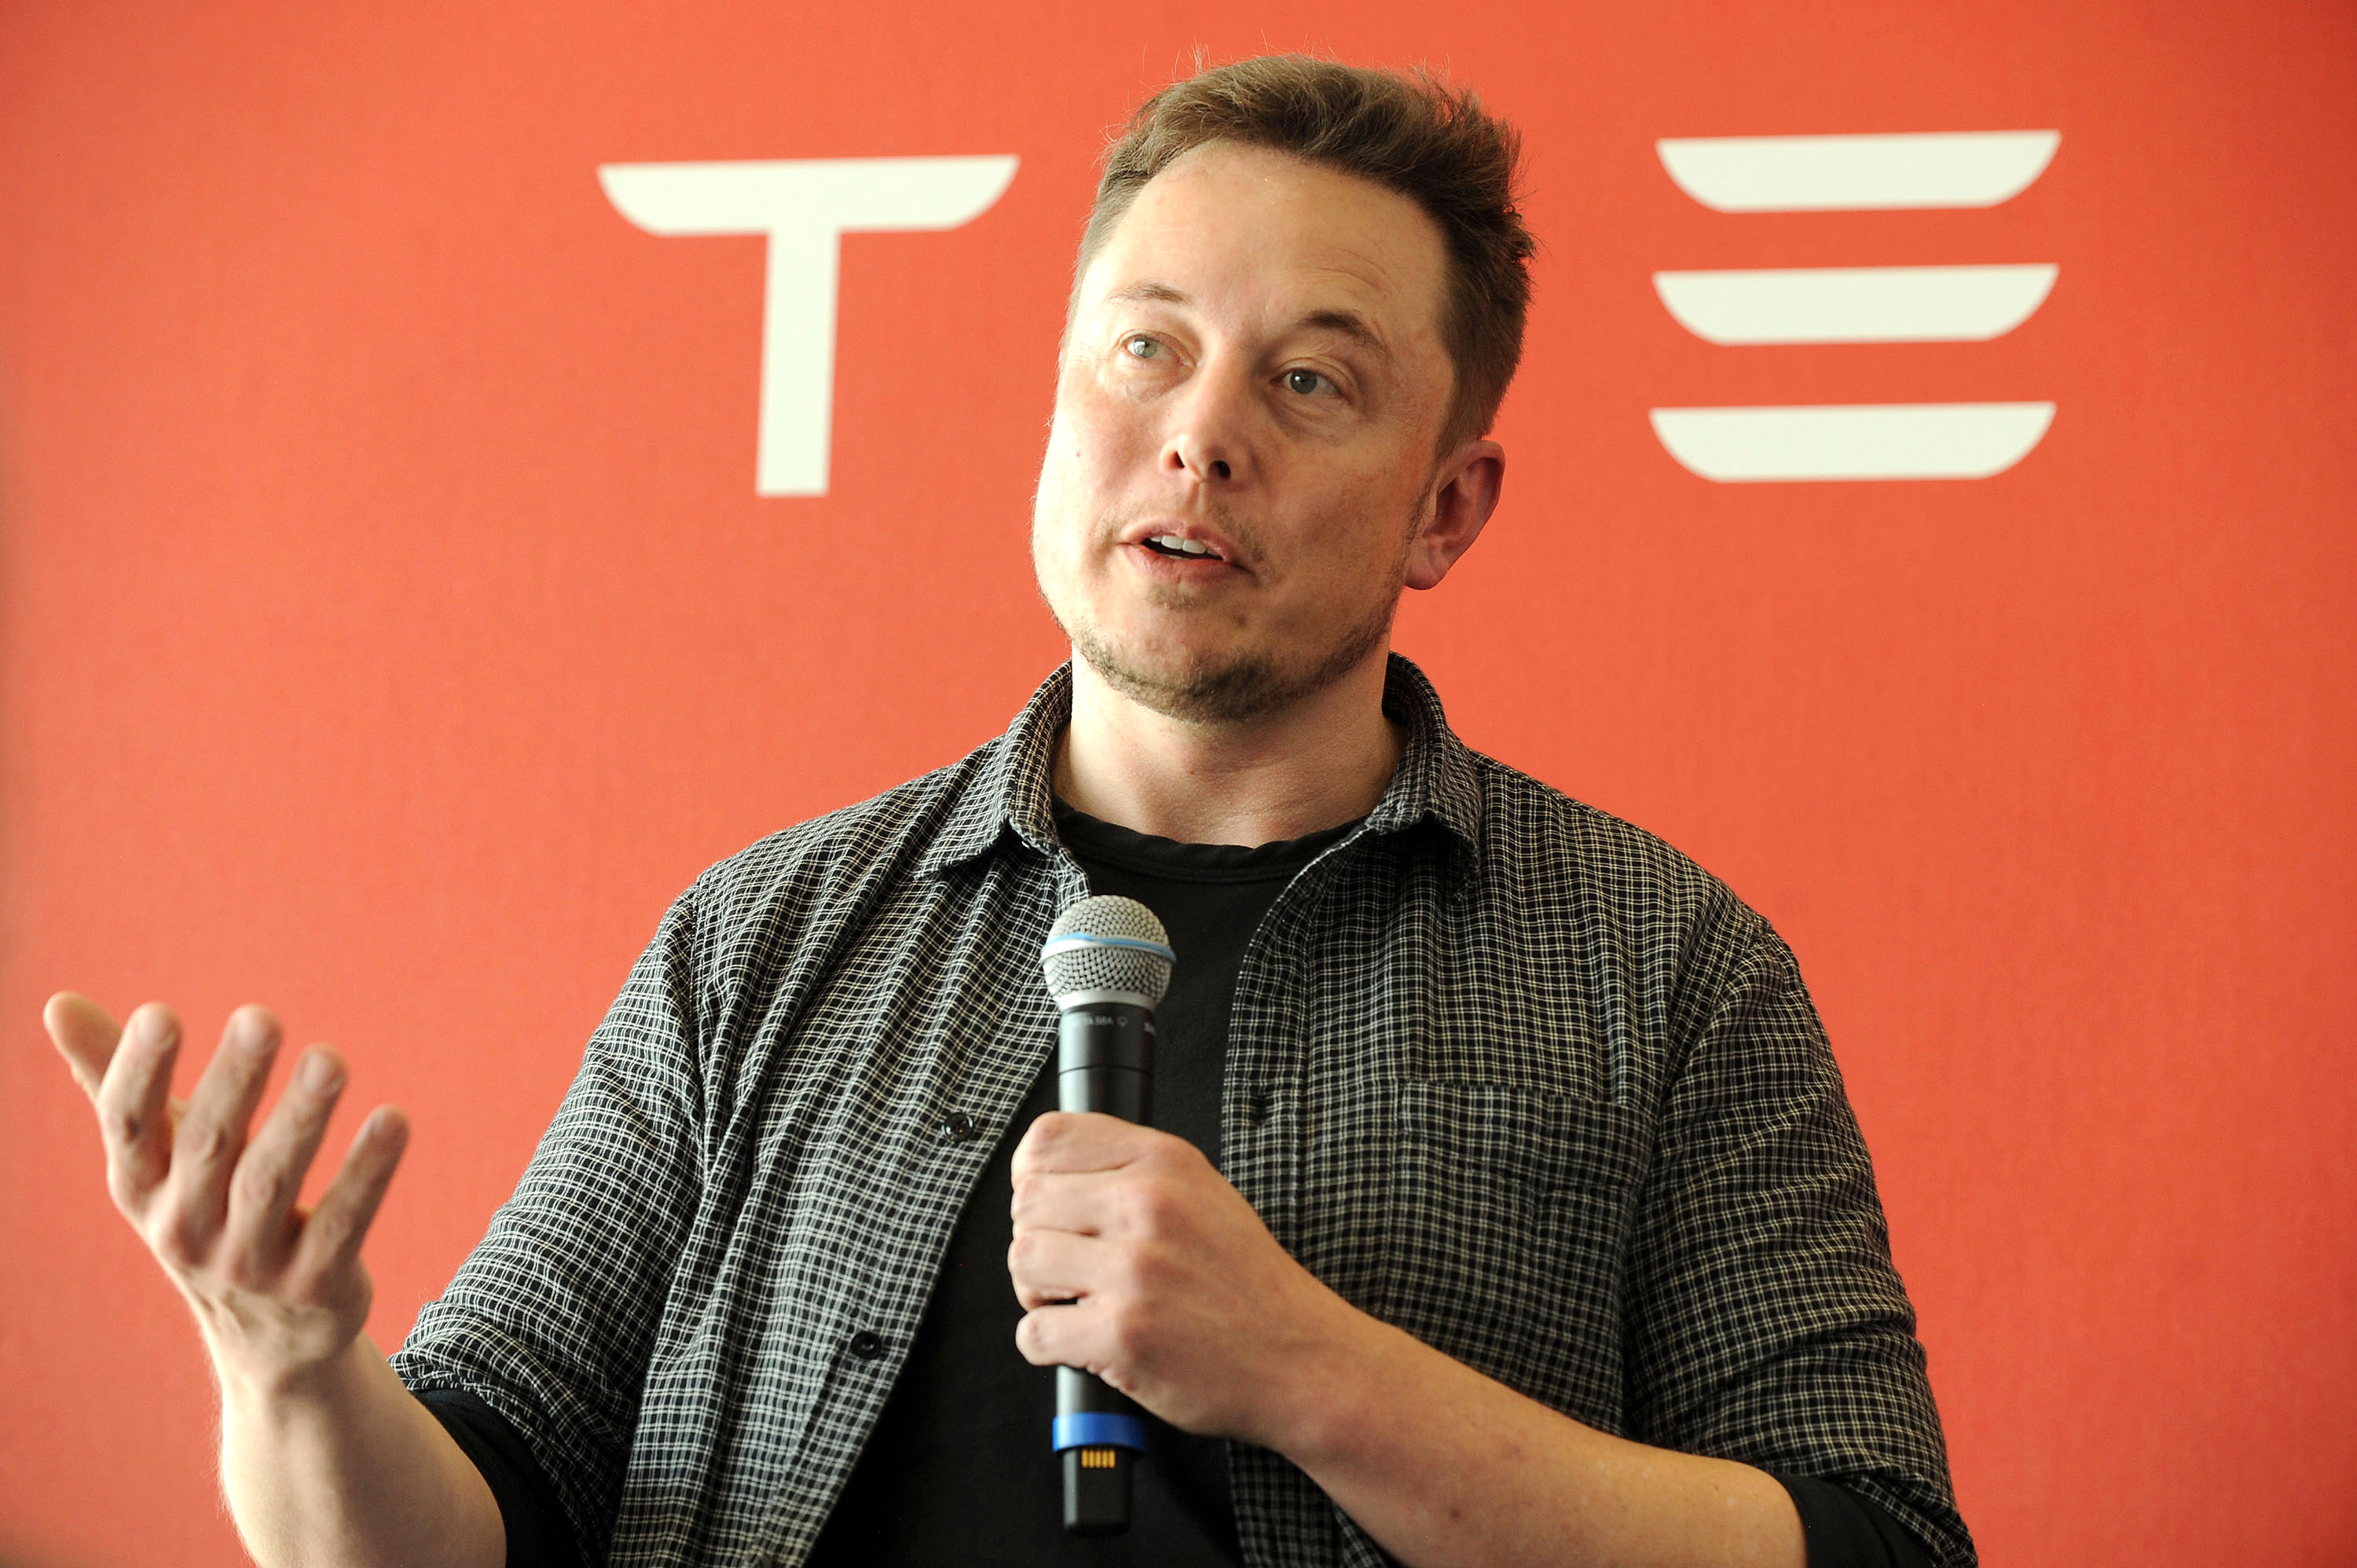 Founder and CEO of Tesla Motors Elon Musk speaks during a media tour of the Tesla Gigafactory, which will produce batteries for the electric carmaker, in Sparks, Nevada, U.S. July 26, 2016.